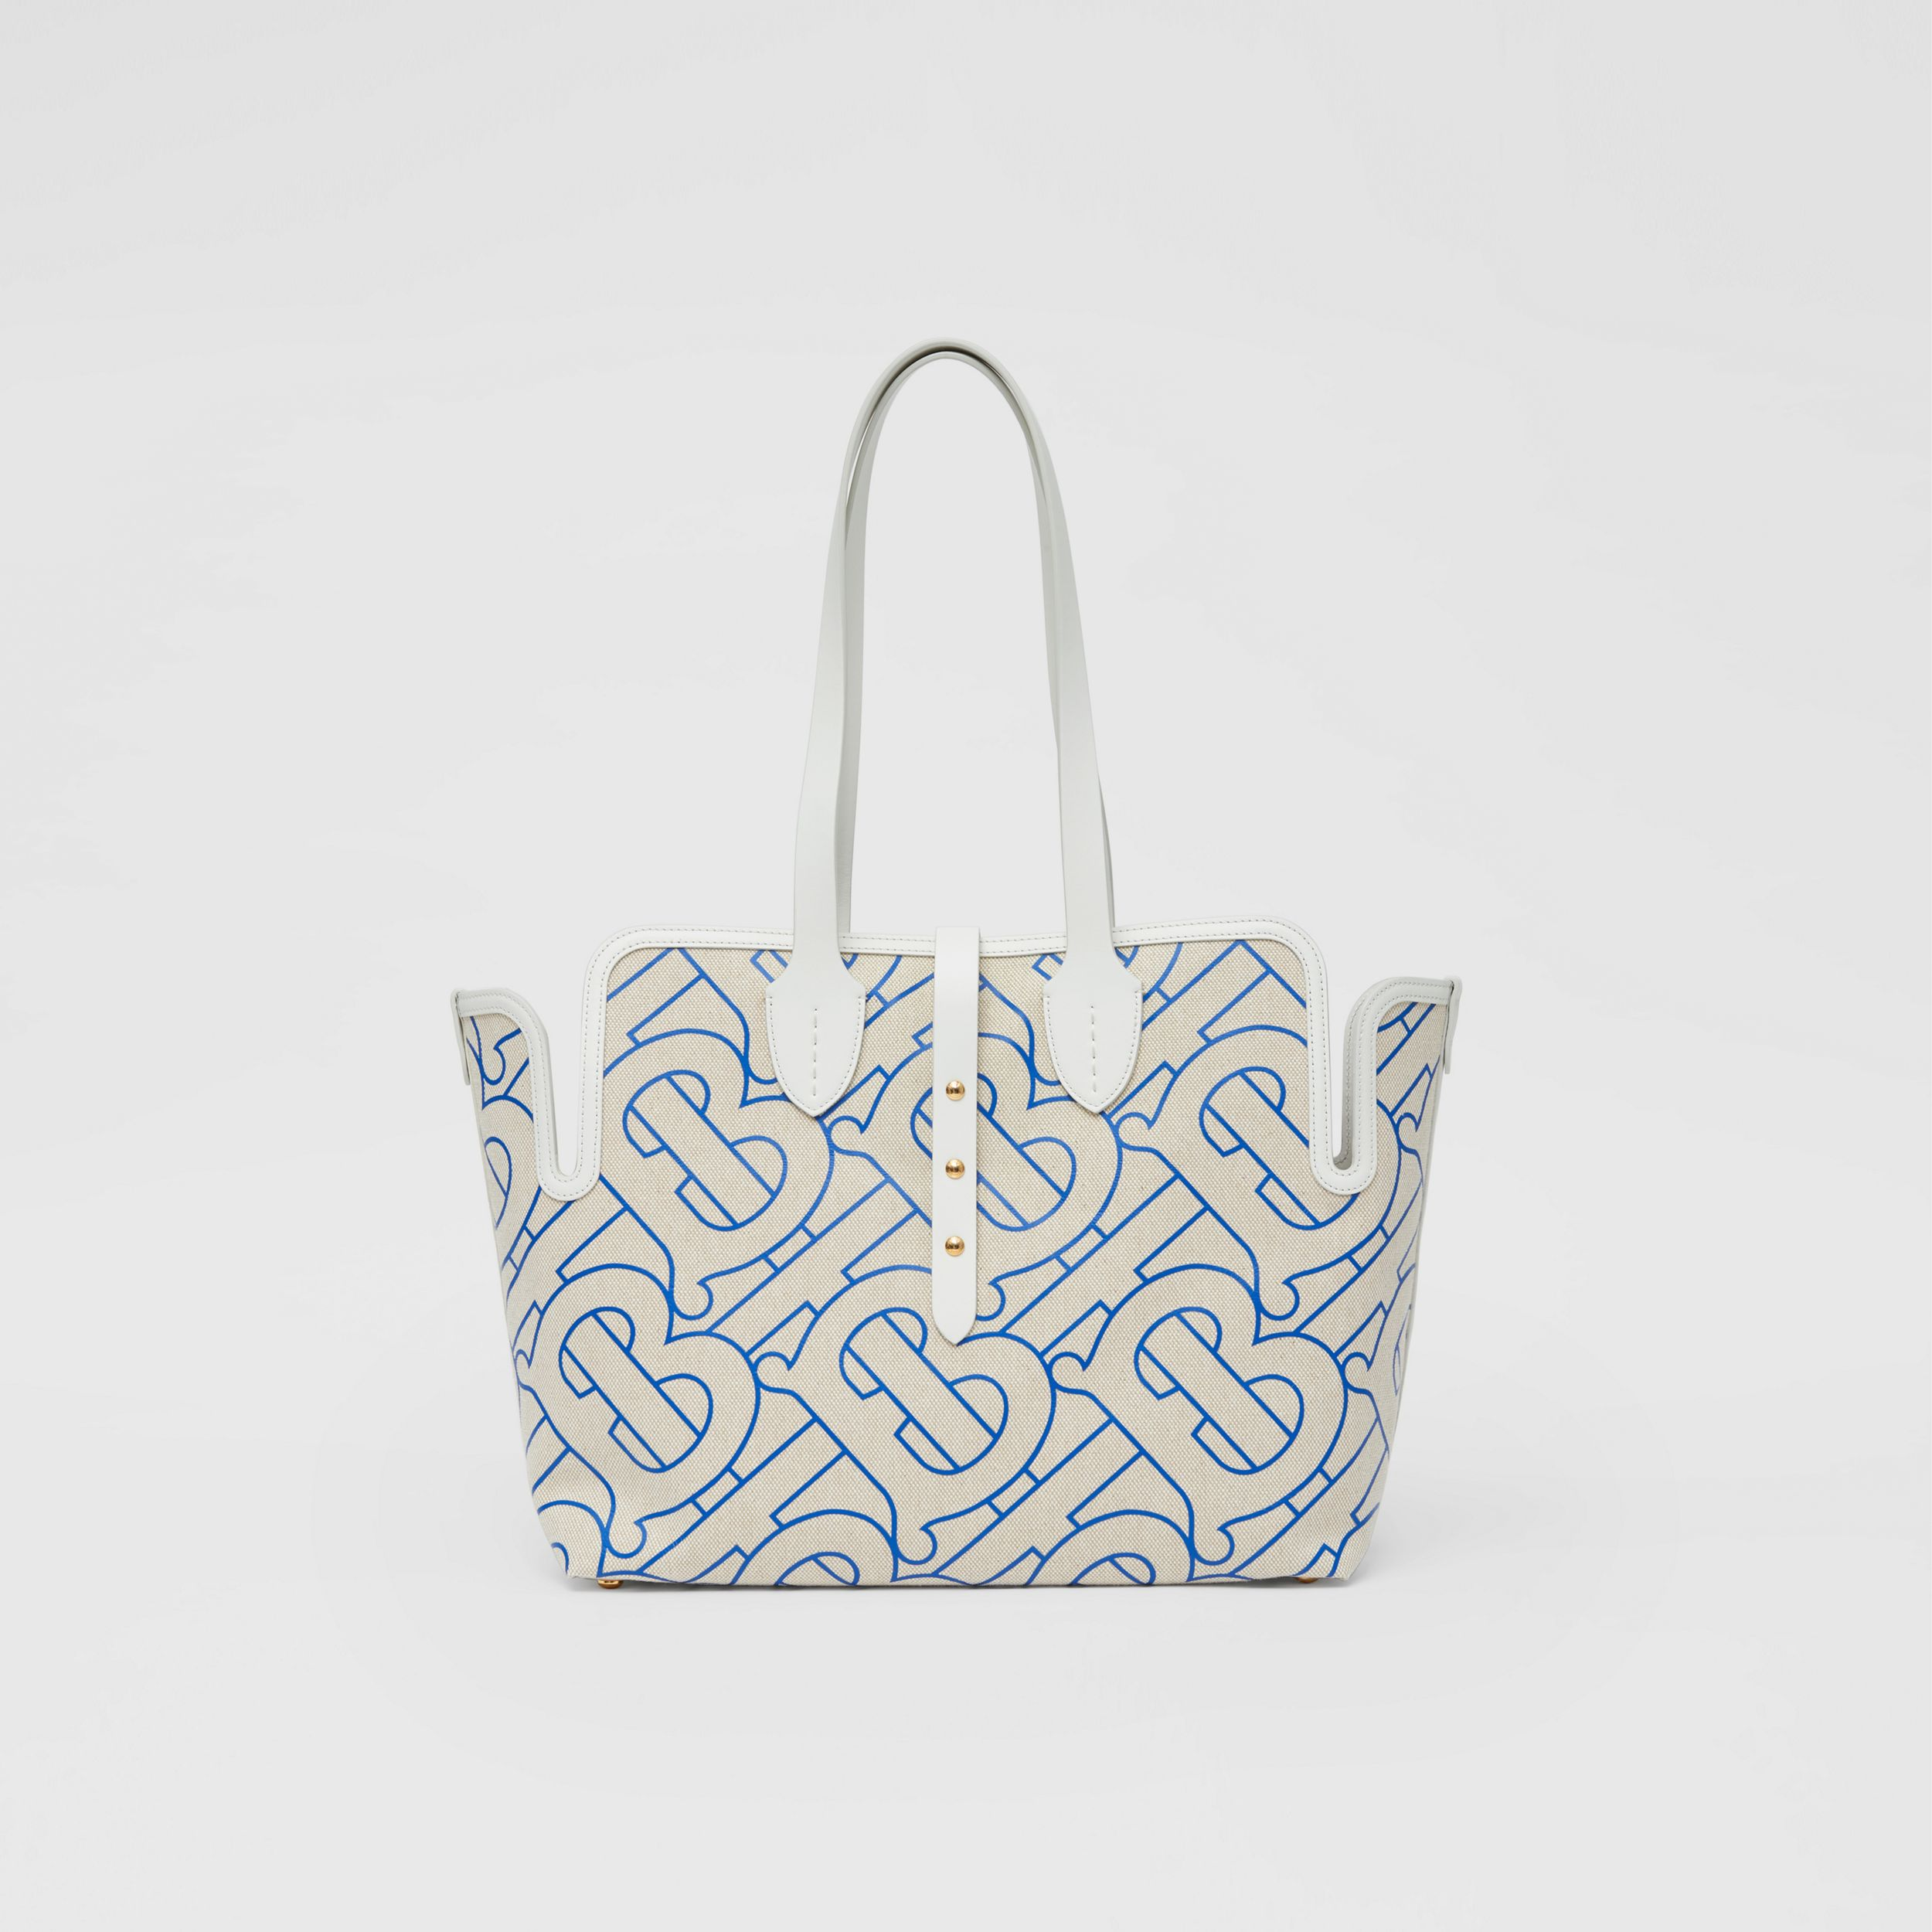 Sac The Belt moyen en toile de coton douce (Naturel/bleu) | Burberry Canada - 1